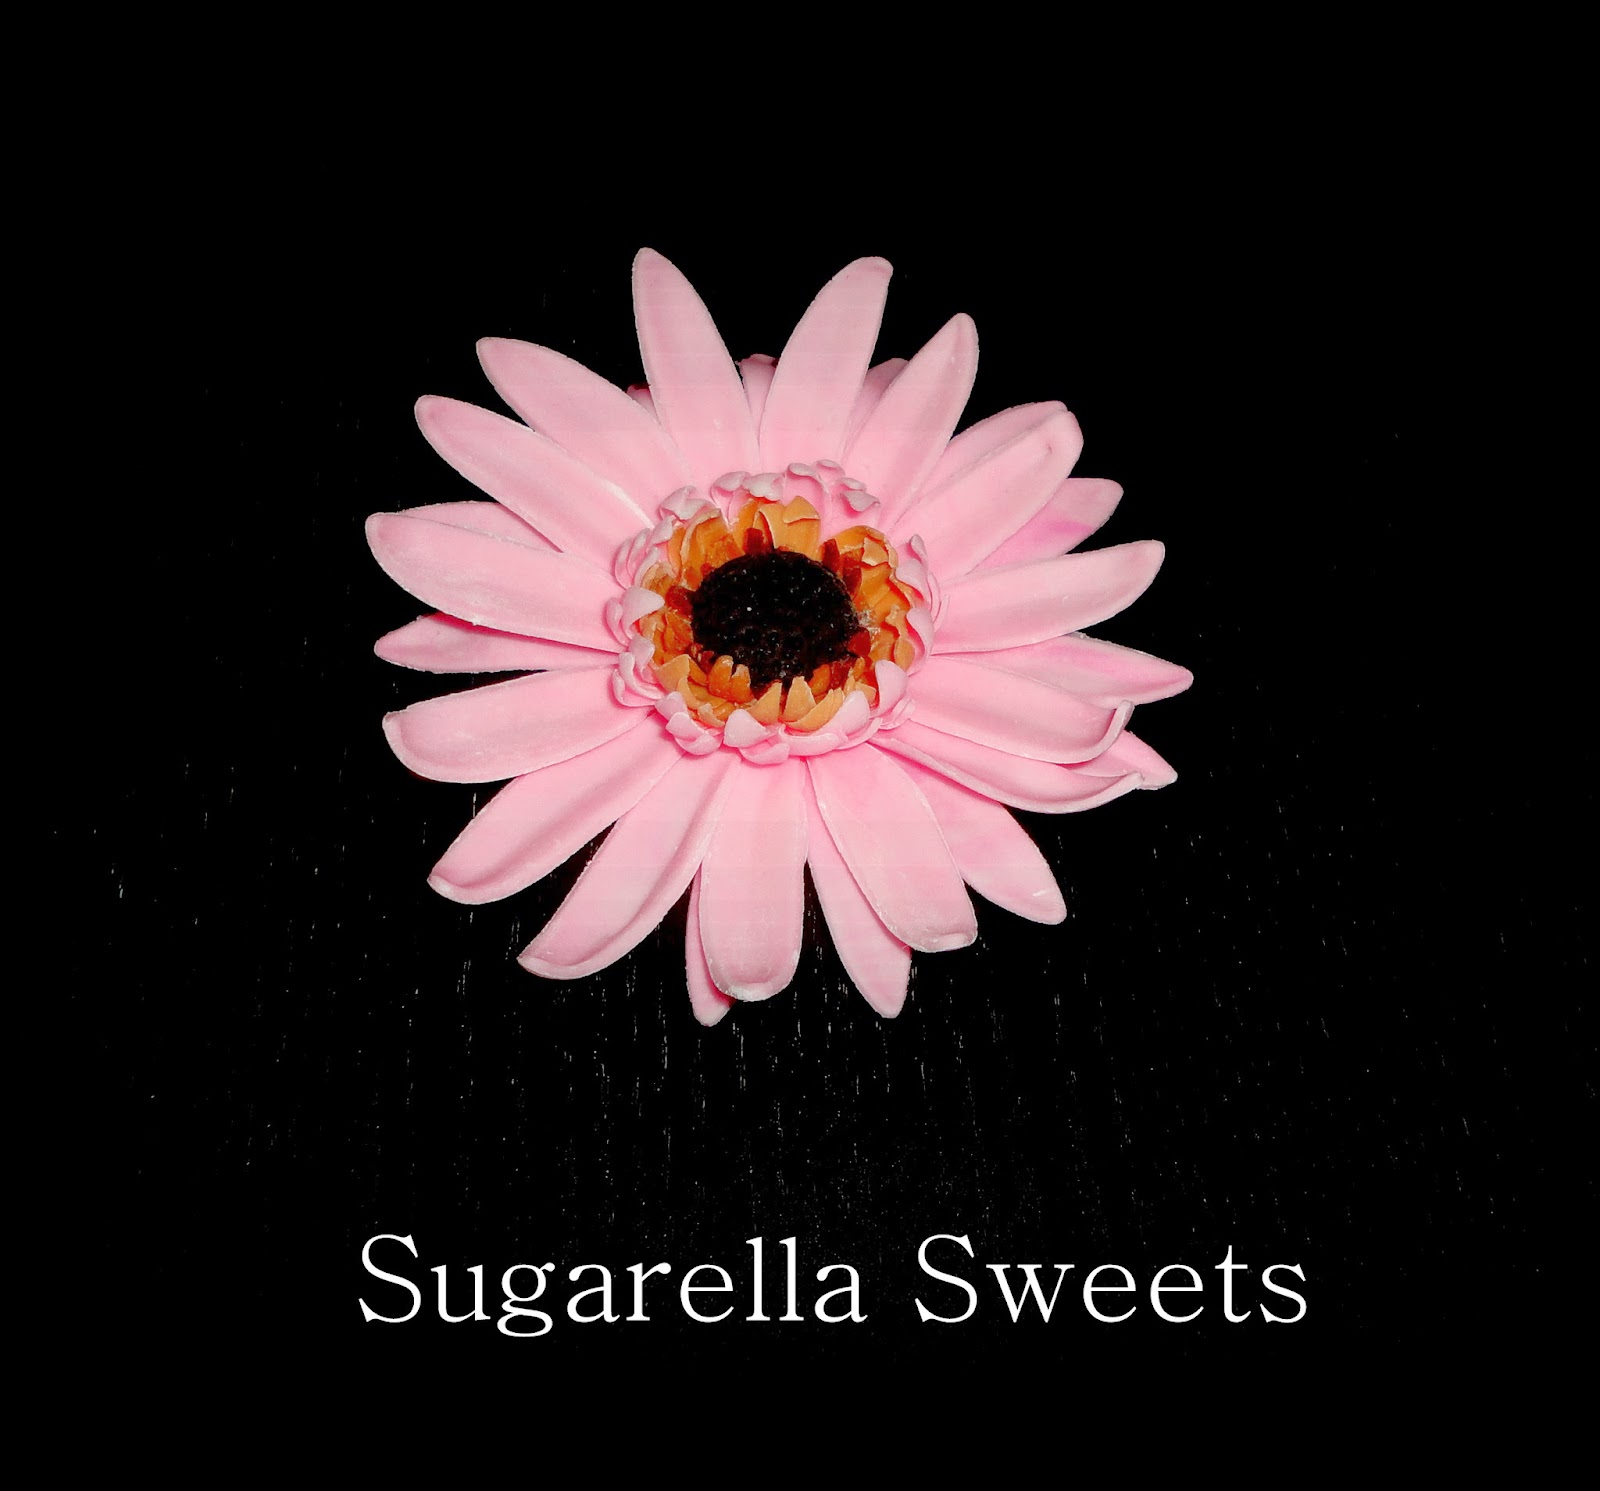 http://sugarellasweetshowto.blogspot.ca/2014/07/how-to-make-gerbera-flower.html